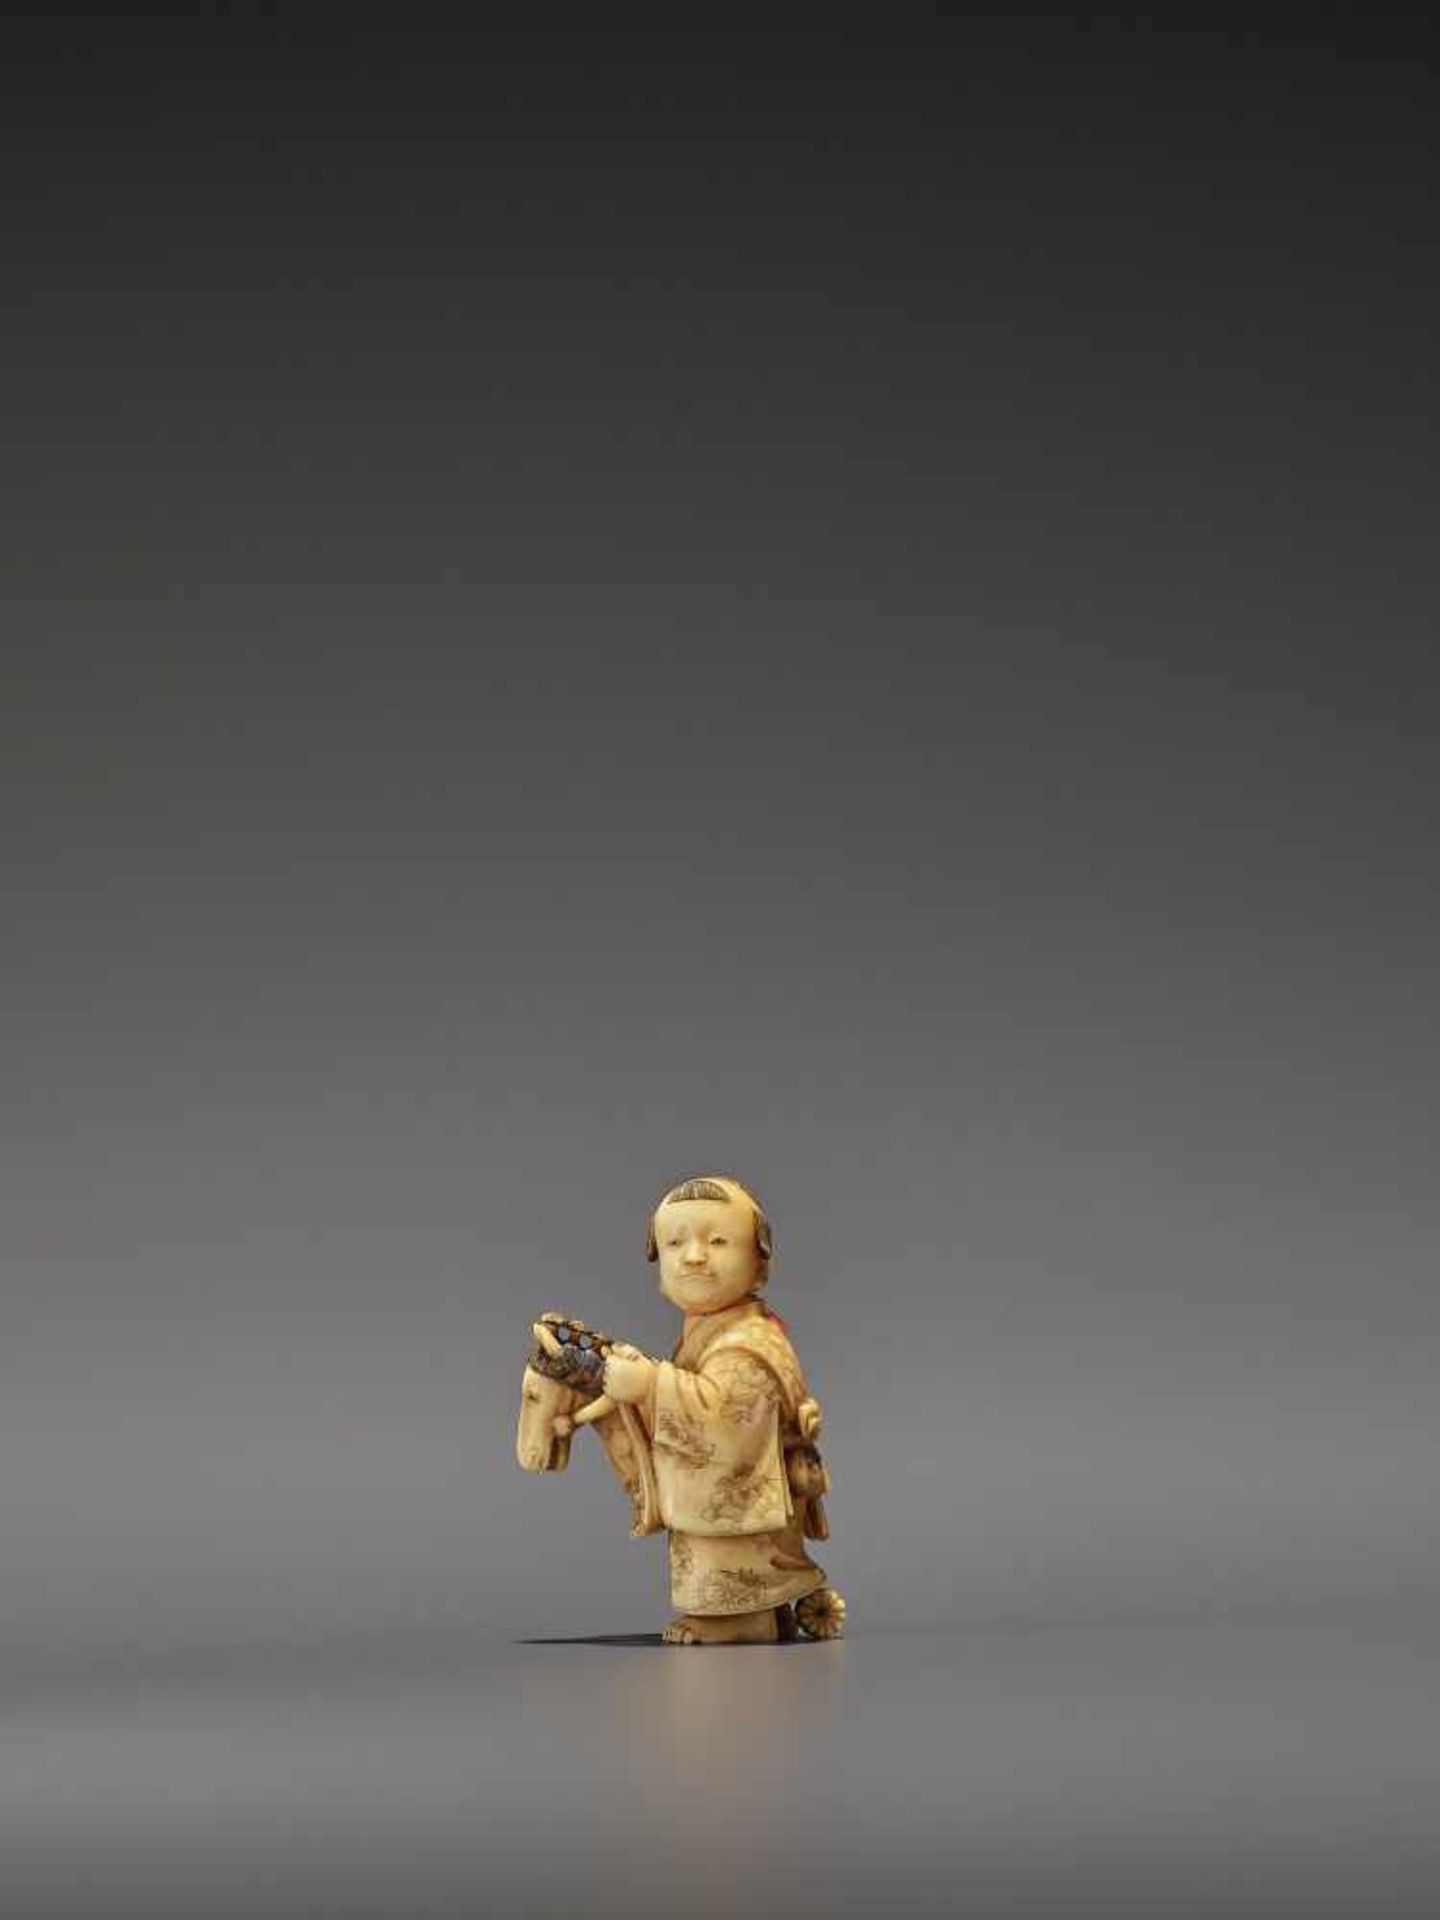 RYOMIN: A VERY FINE IVORY NETSUKE OF A BOY WITH HOBBY HORSE By Ono Ryomin, signed Ryomin with